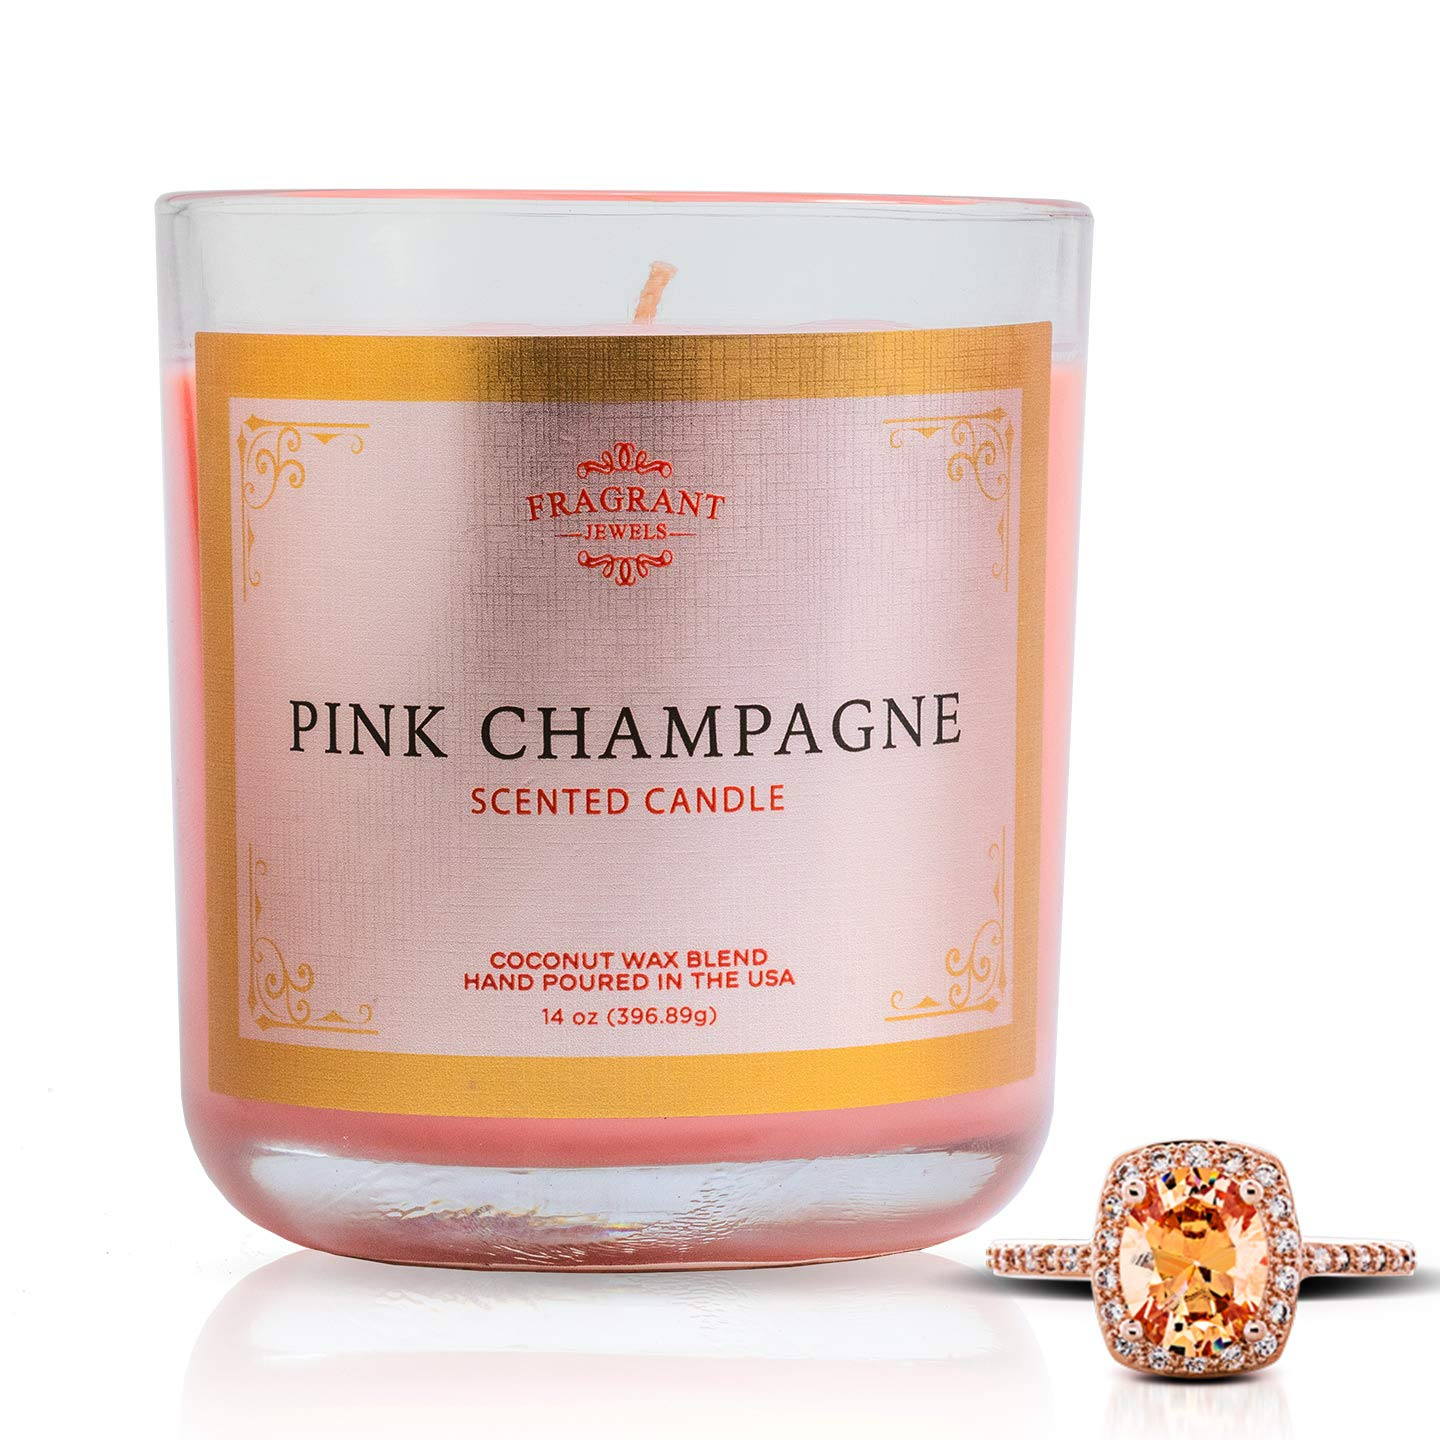 Fragrant Jewels Pink Champagne Jewel Candle with Collectible Rings (Size 5-10)